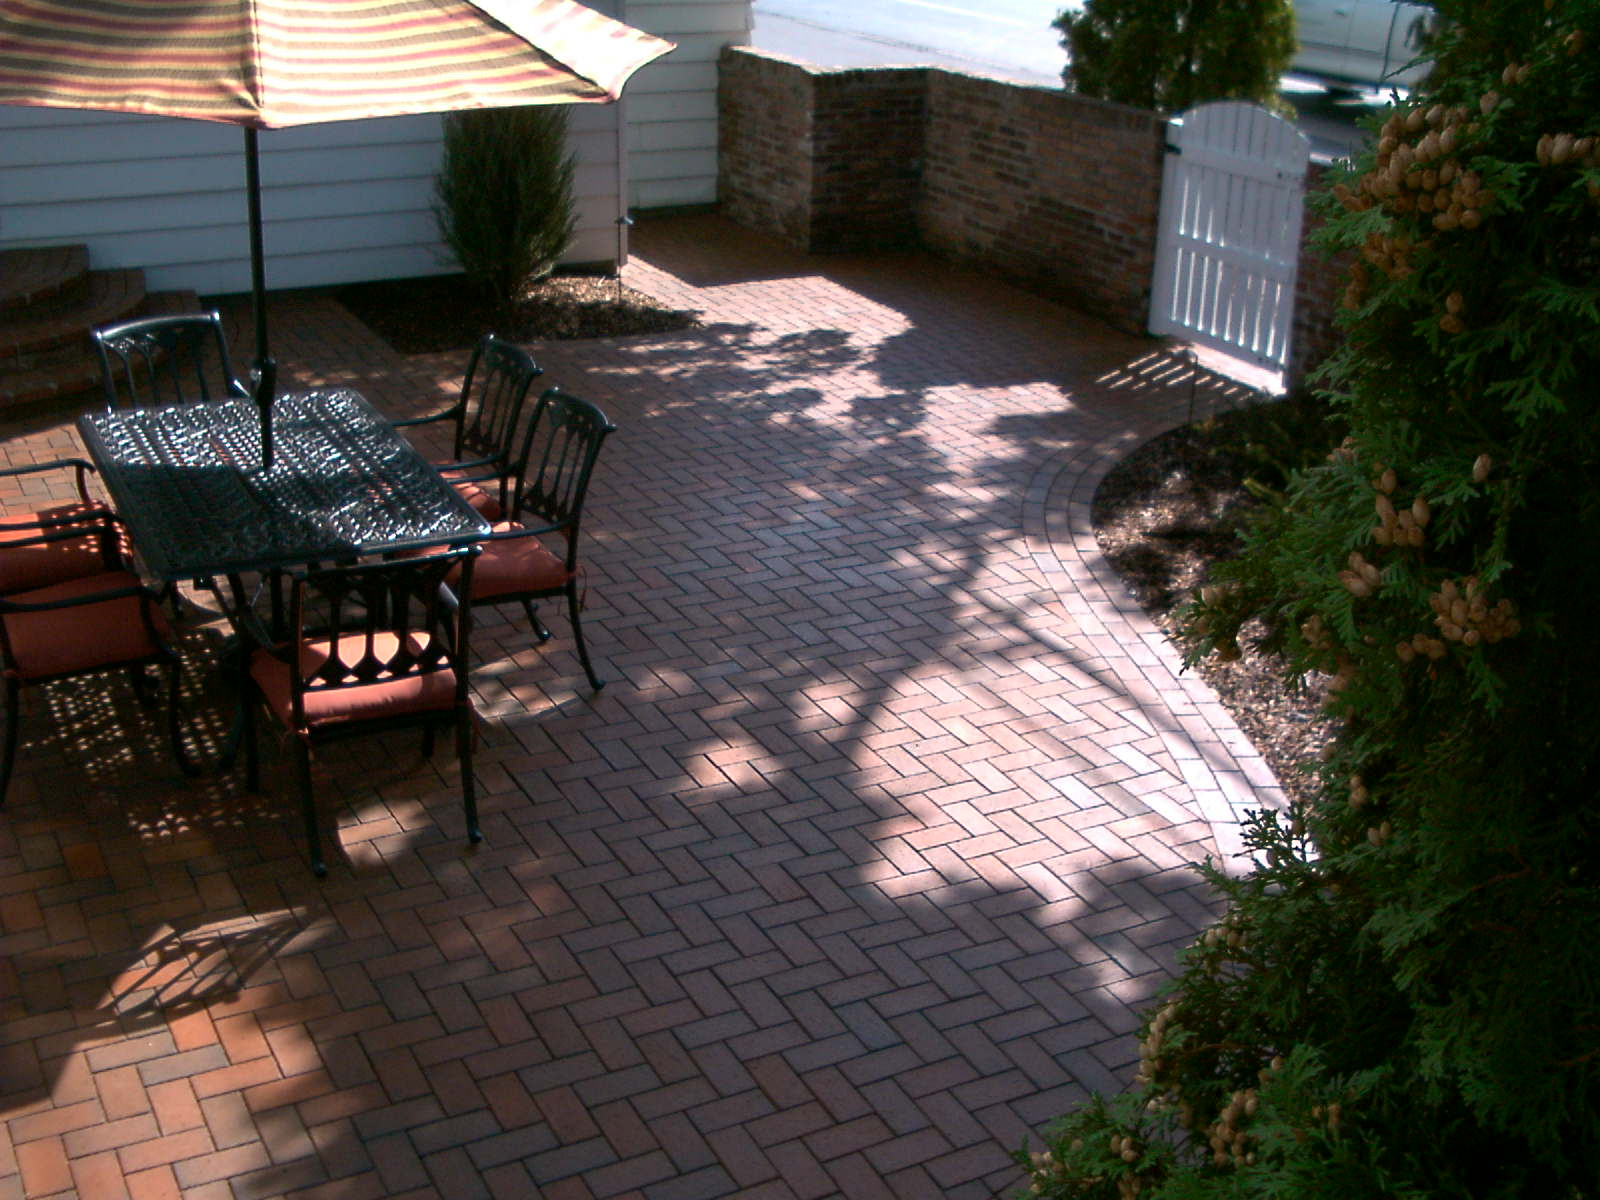 Pine Hall Brick paver patio area.